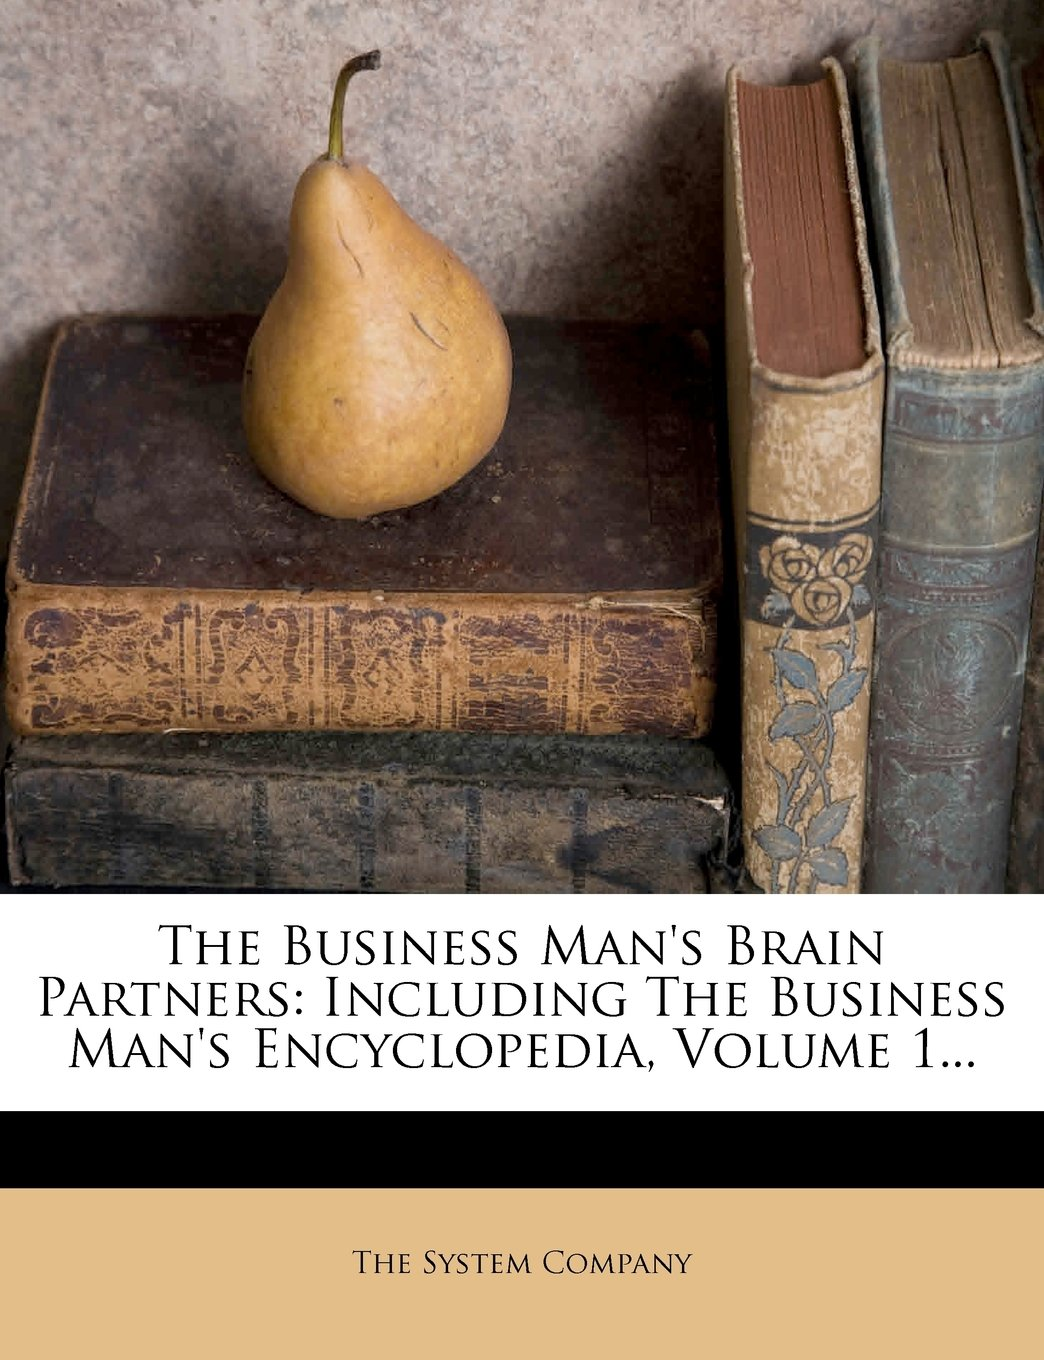 The Business Man's Brain Partners: Including The Business Man's Encyclopedia, Volume 1... ebook